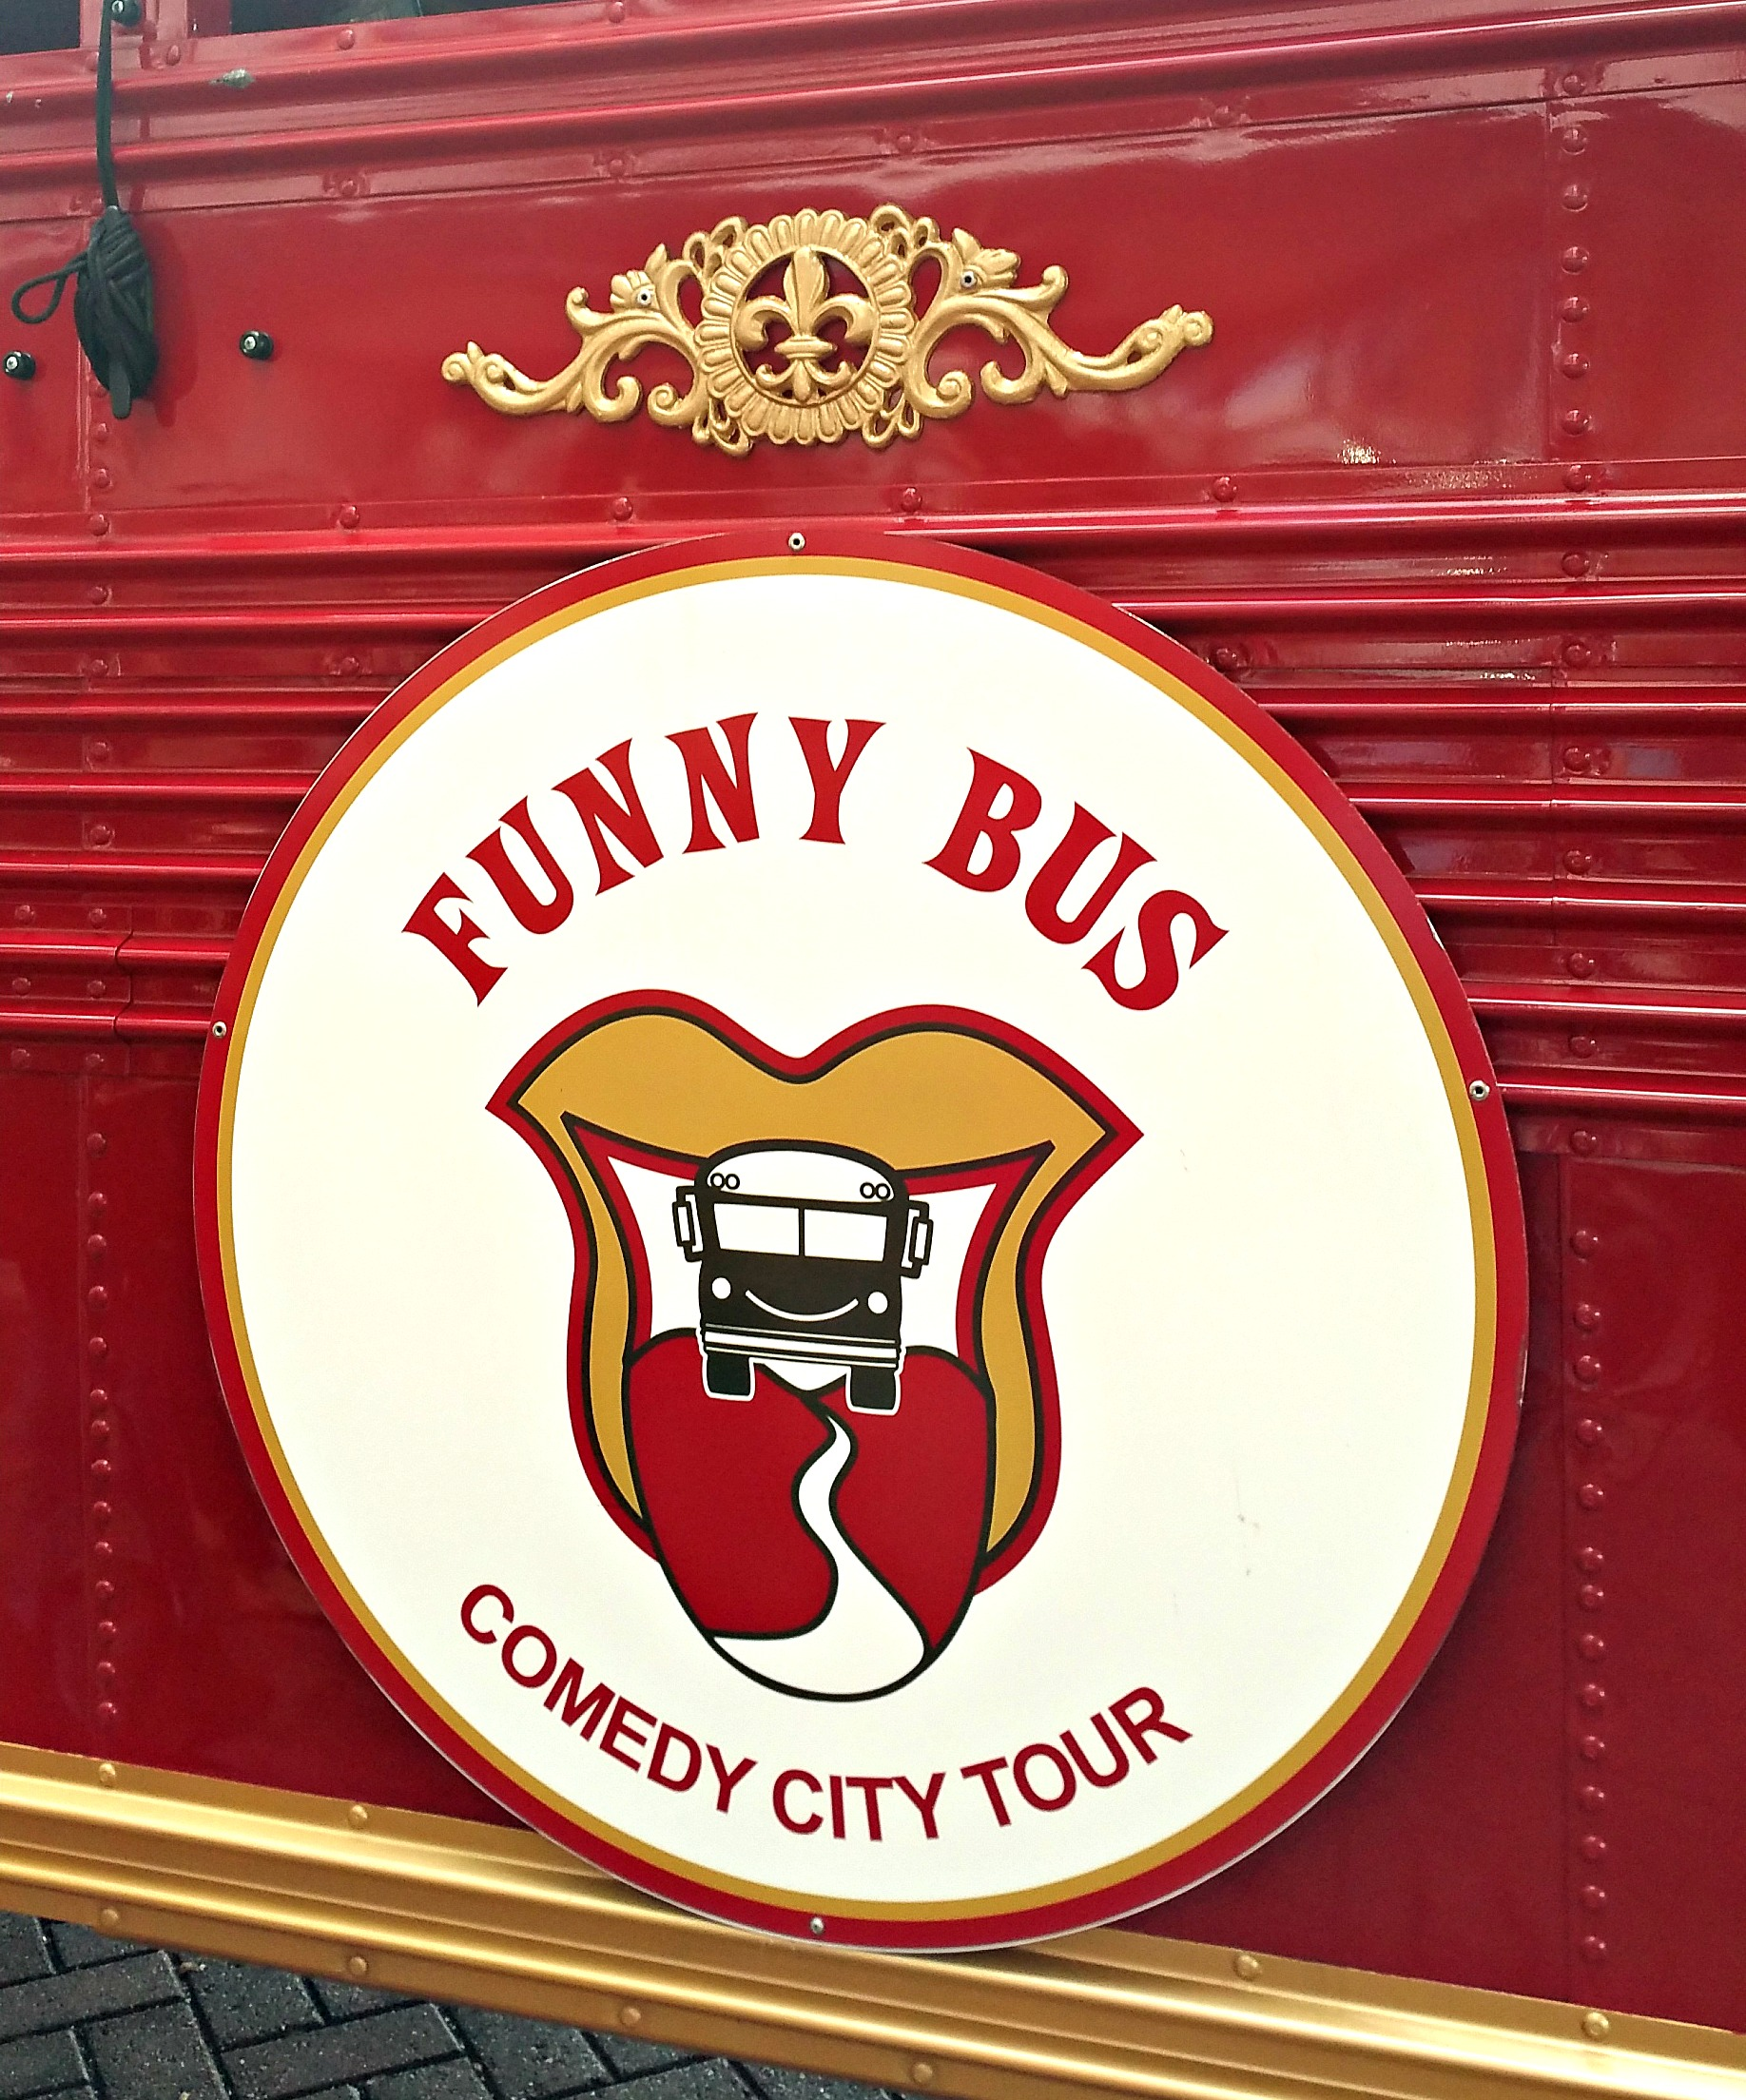 Funny Bus Tours in Charlotte, NC